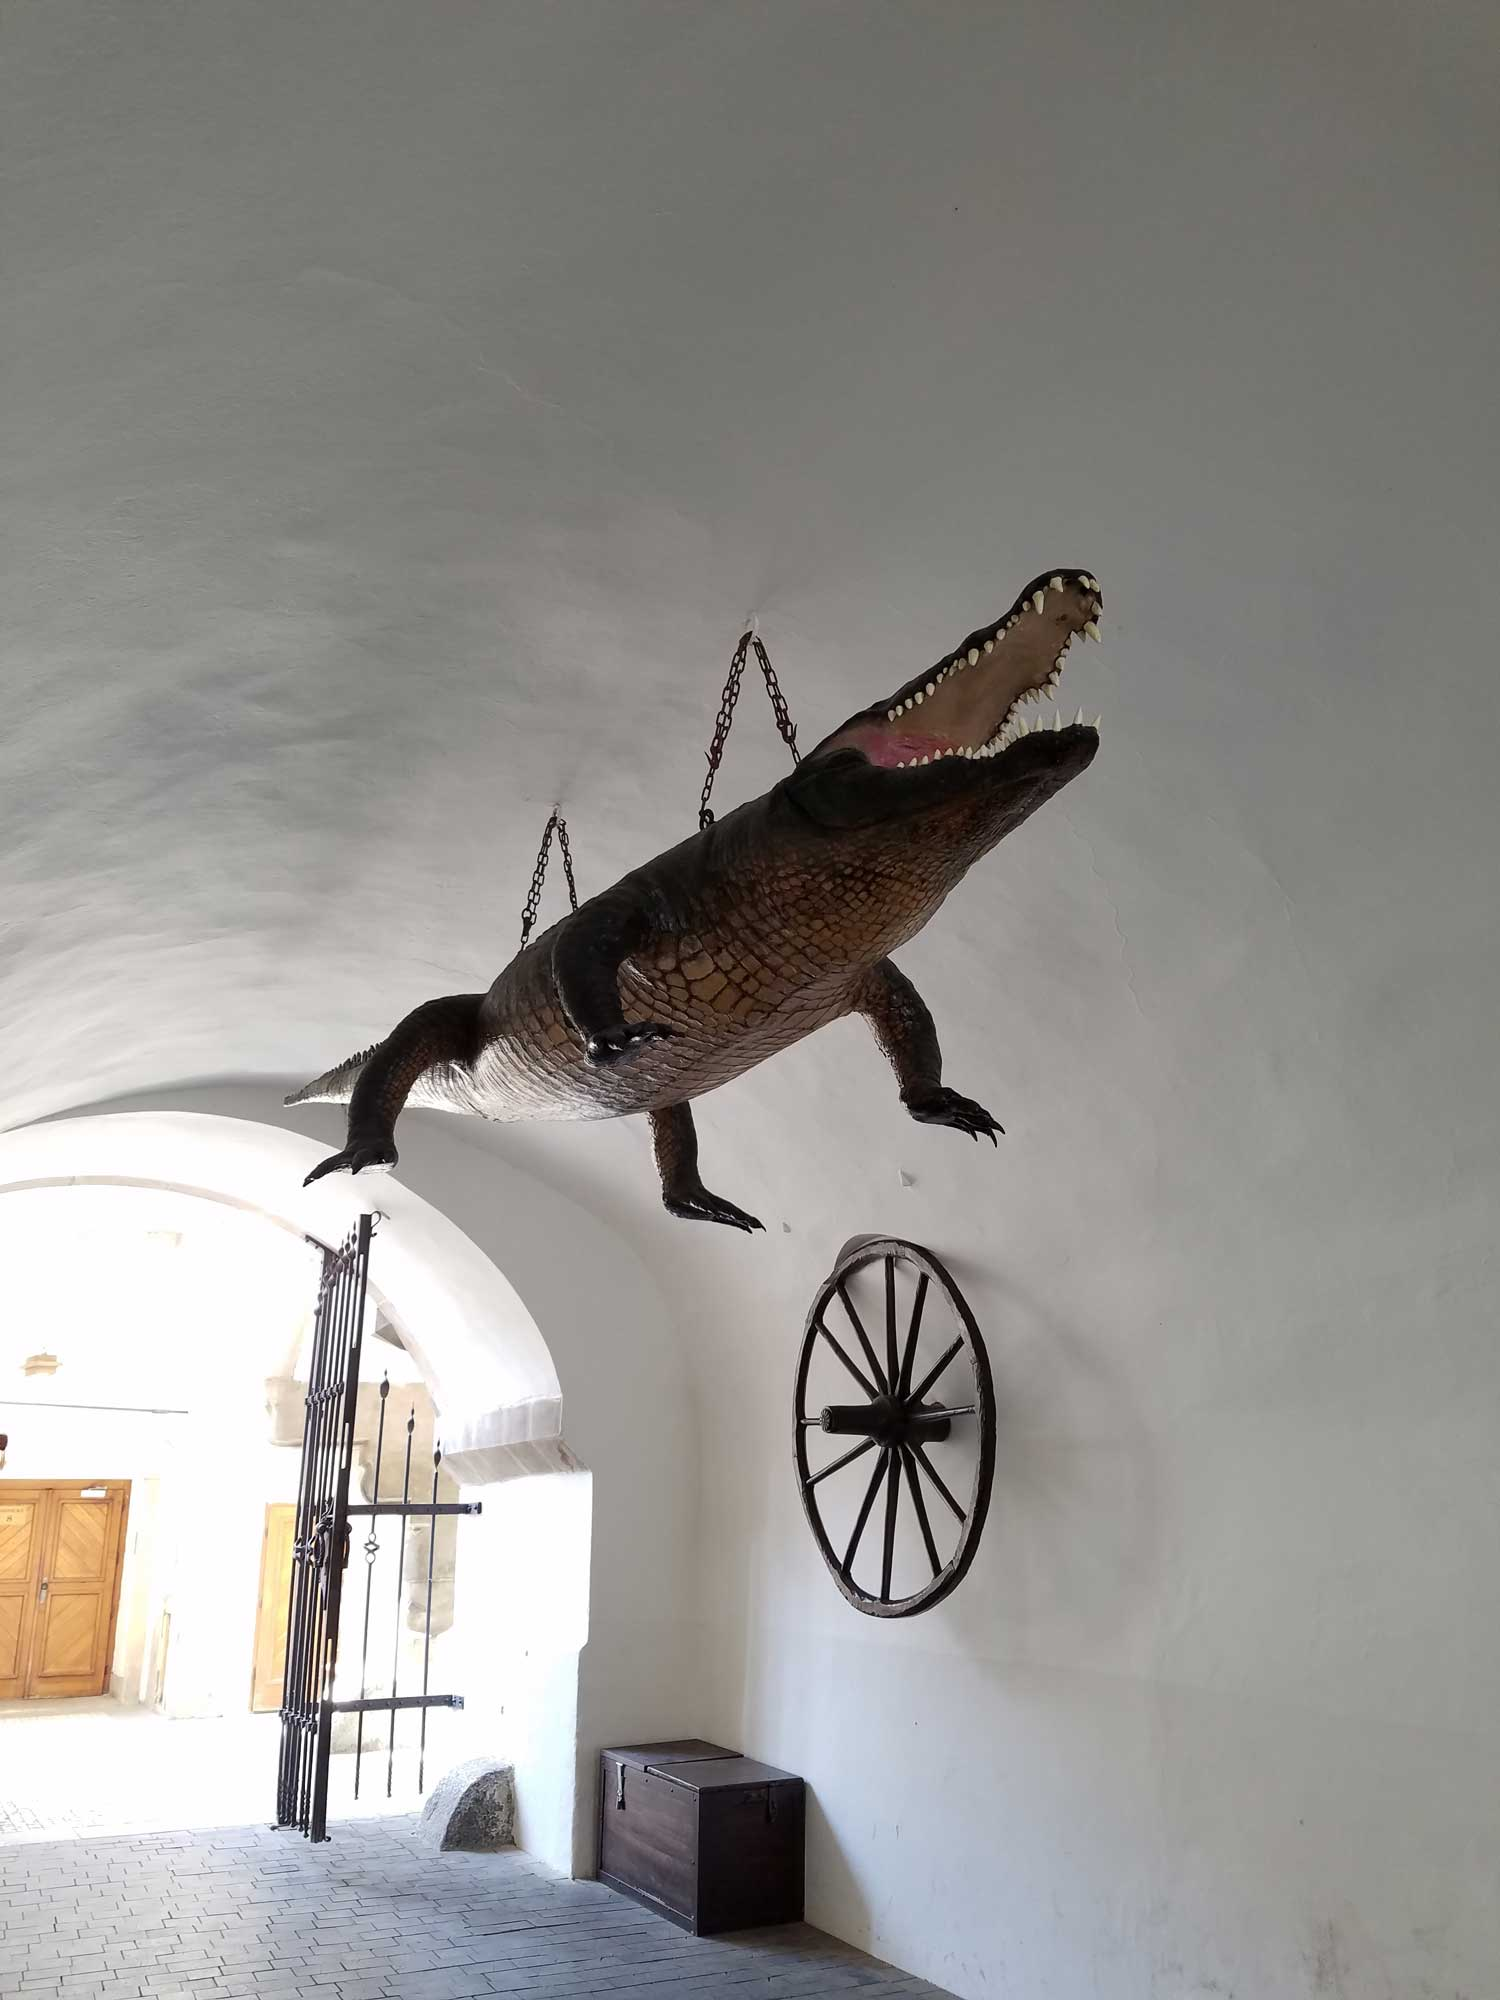 For some reason there is a 400-year old replica of a crocodile (using real crocodile skin brought by the Turks during negotiations with the Hapsburgs in the 1600s) hanging from the ceiling underneath Brno's city hall.